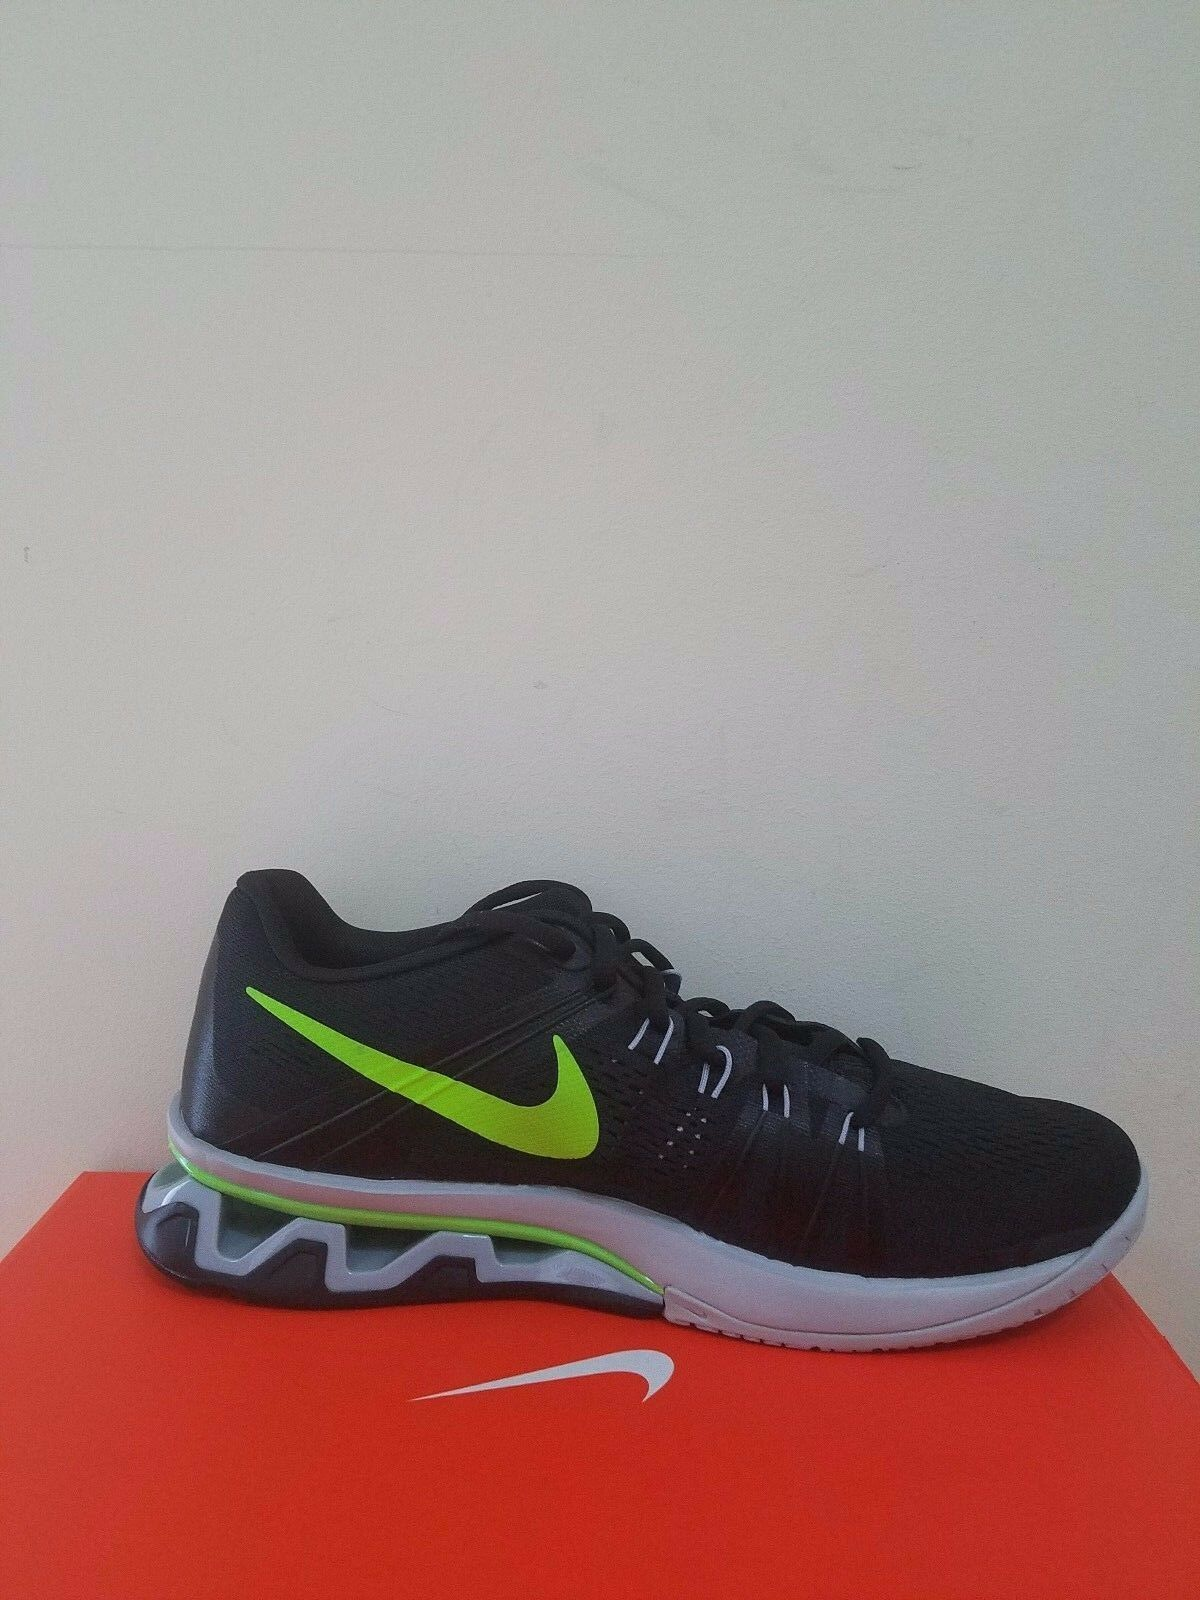 newest collection 9d4d9 e97f6 ... Nike Men s Reax Lightspeed Training Shoe Shoe Shoe Size 9.5 NIB d454ff  ...